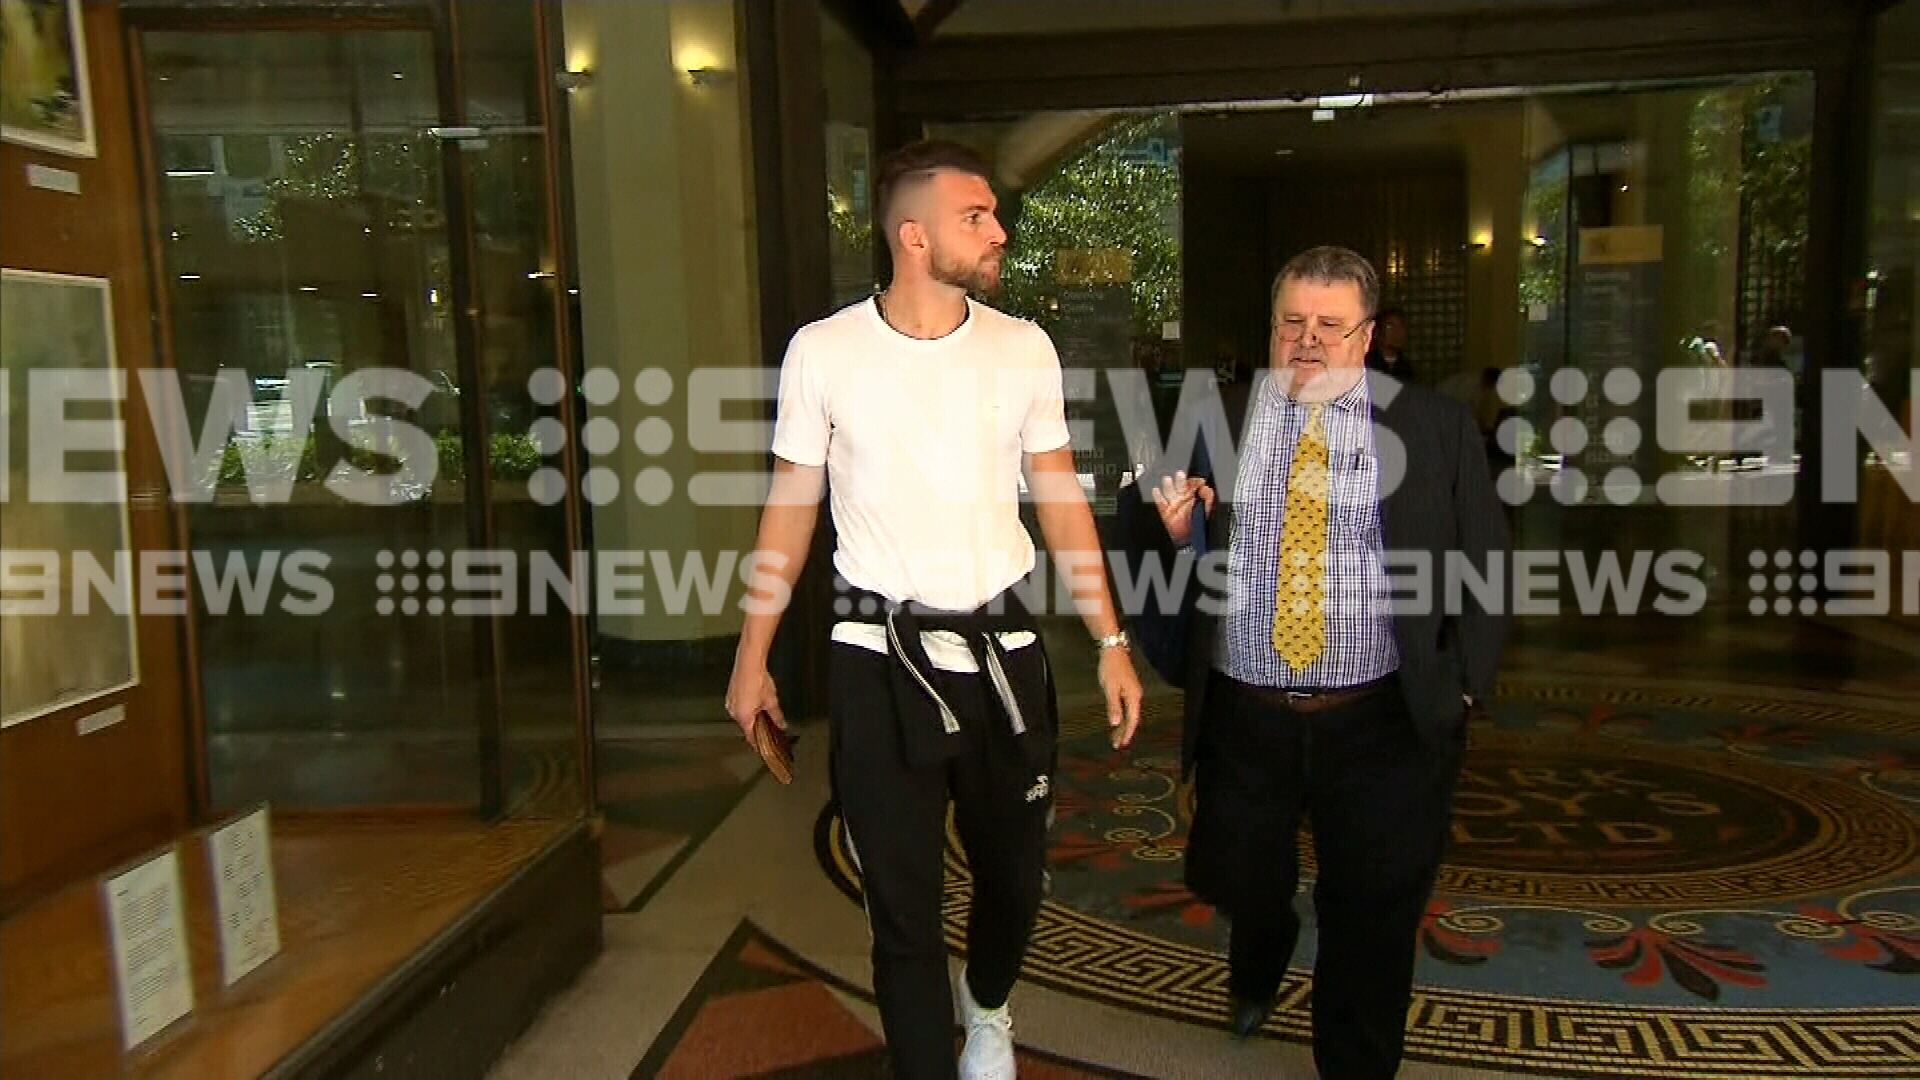 Marko Simic: News Sydney: Marko Simic Charged With Assaulting Woman On